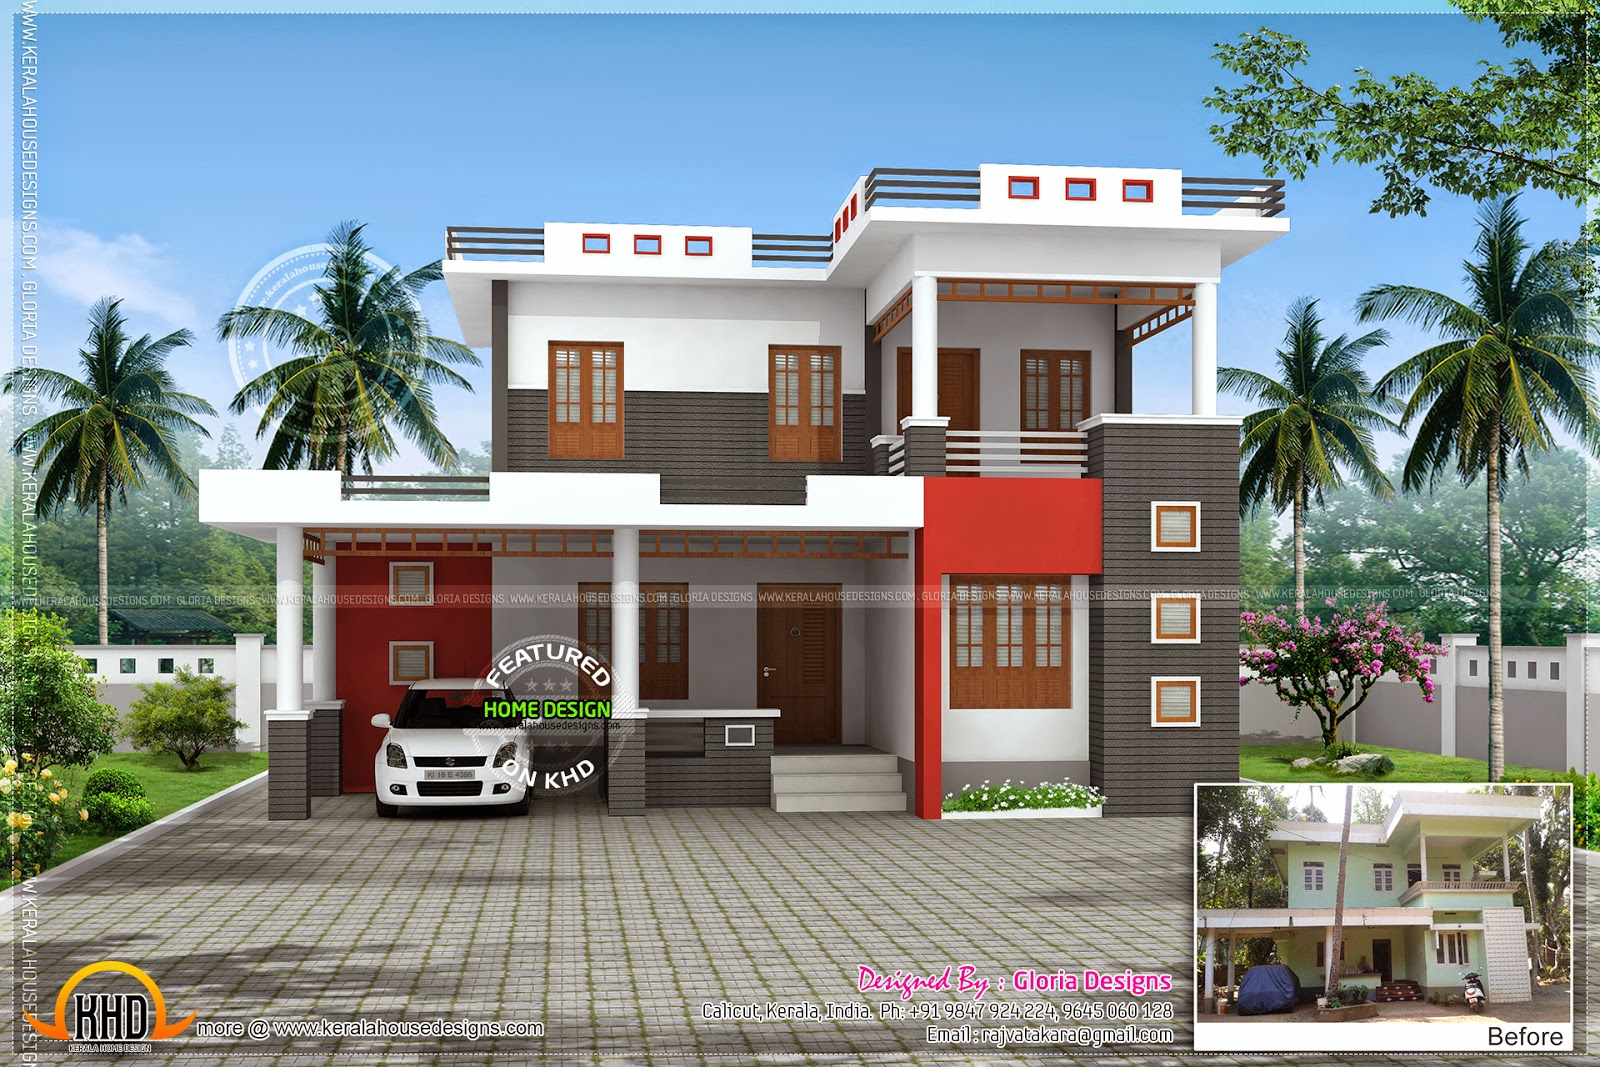 Renovation 3d model for an old house kerala home design Good house designs in india